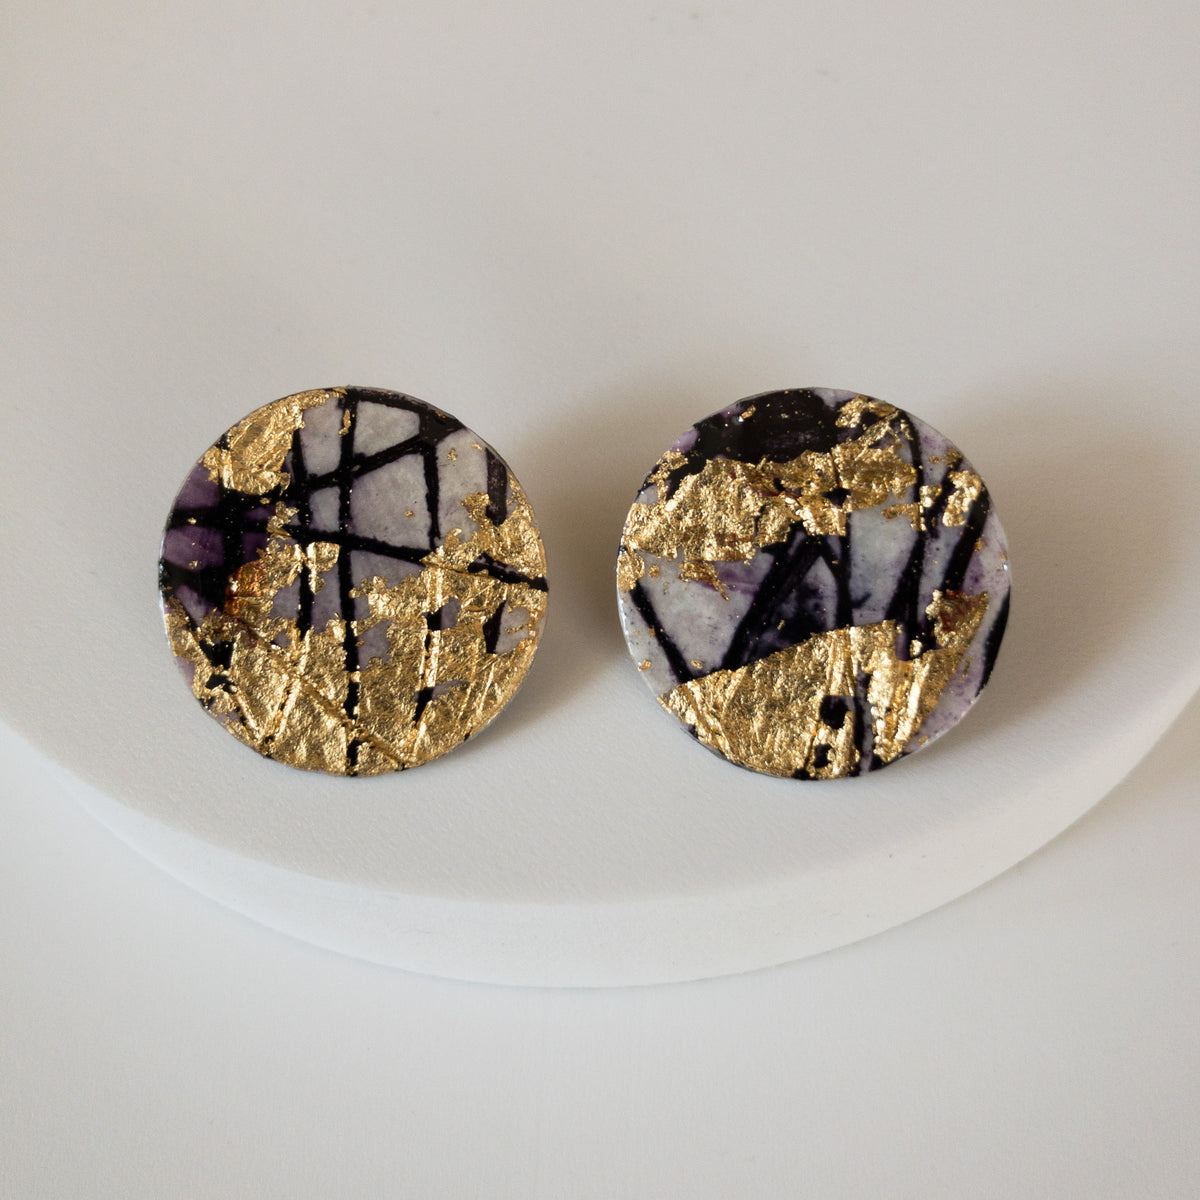 Ró sgraffito earrings in gold/black